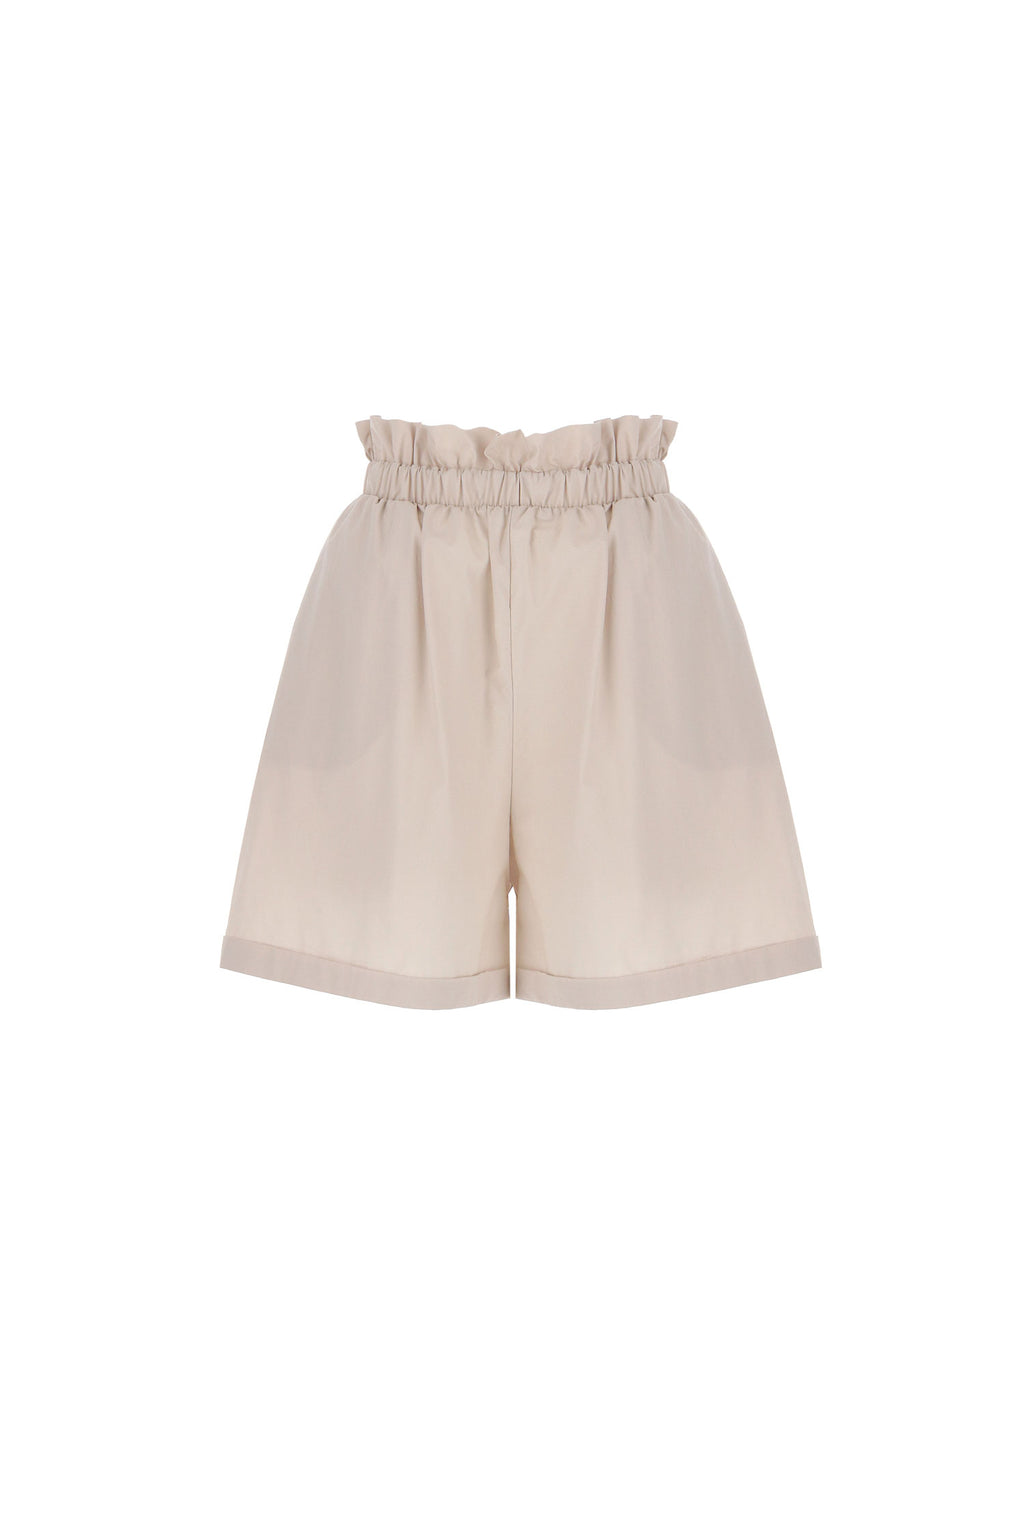 IMPERIAL | FLARED SHORTS WITH GATHERED WAIST